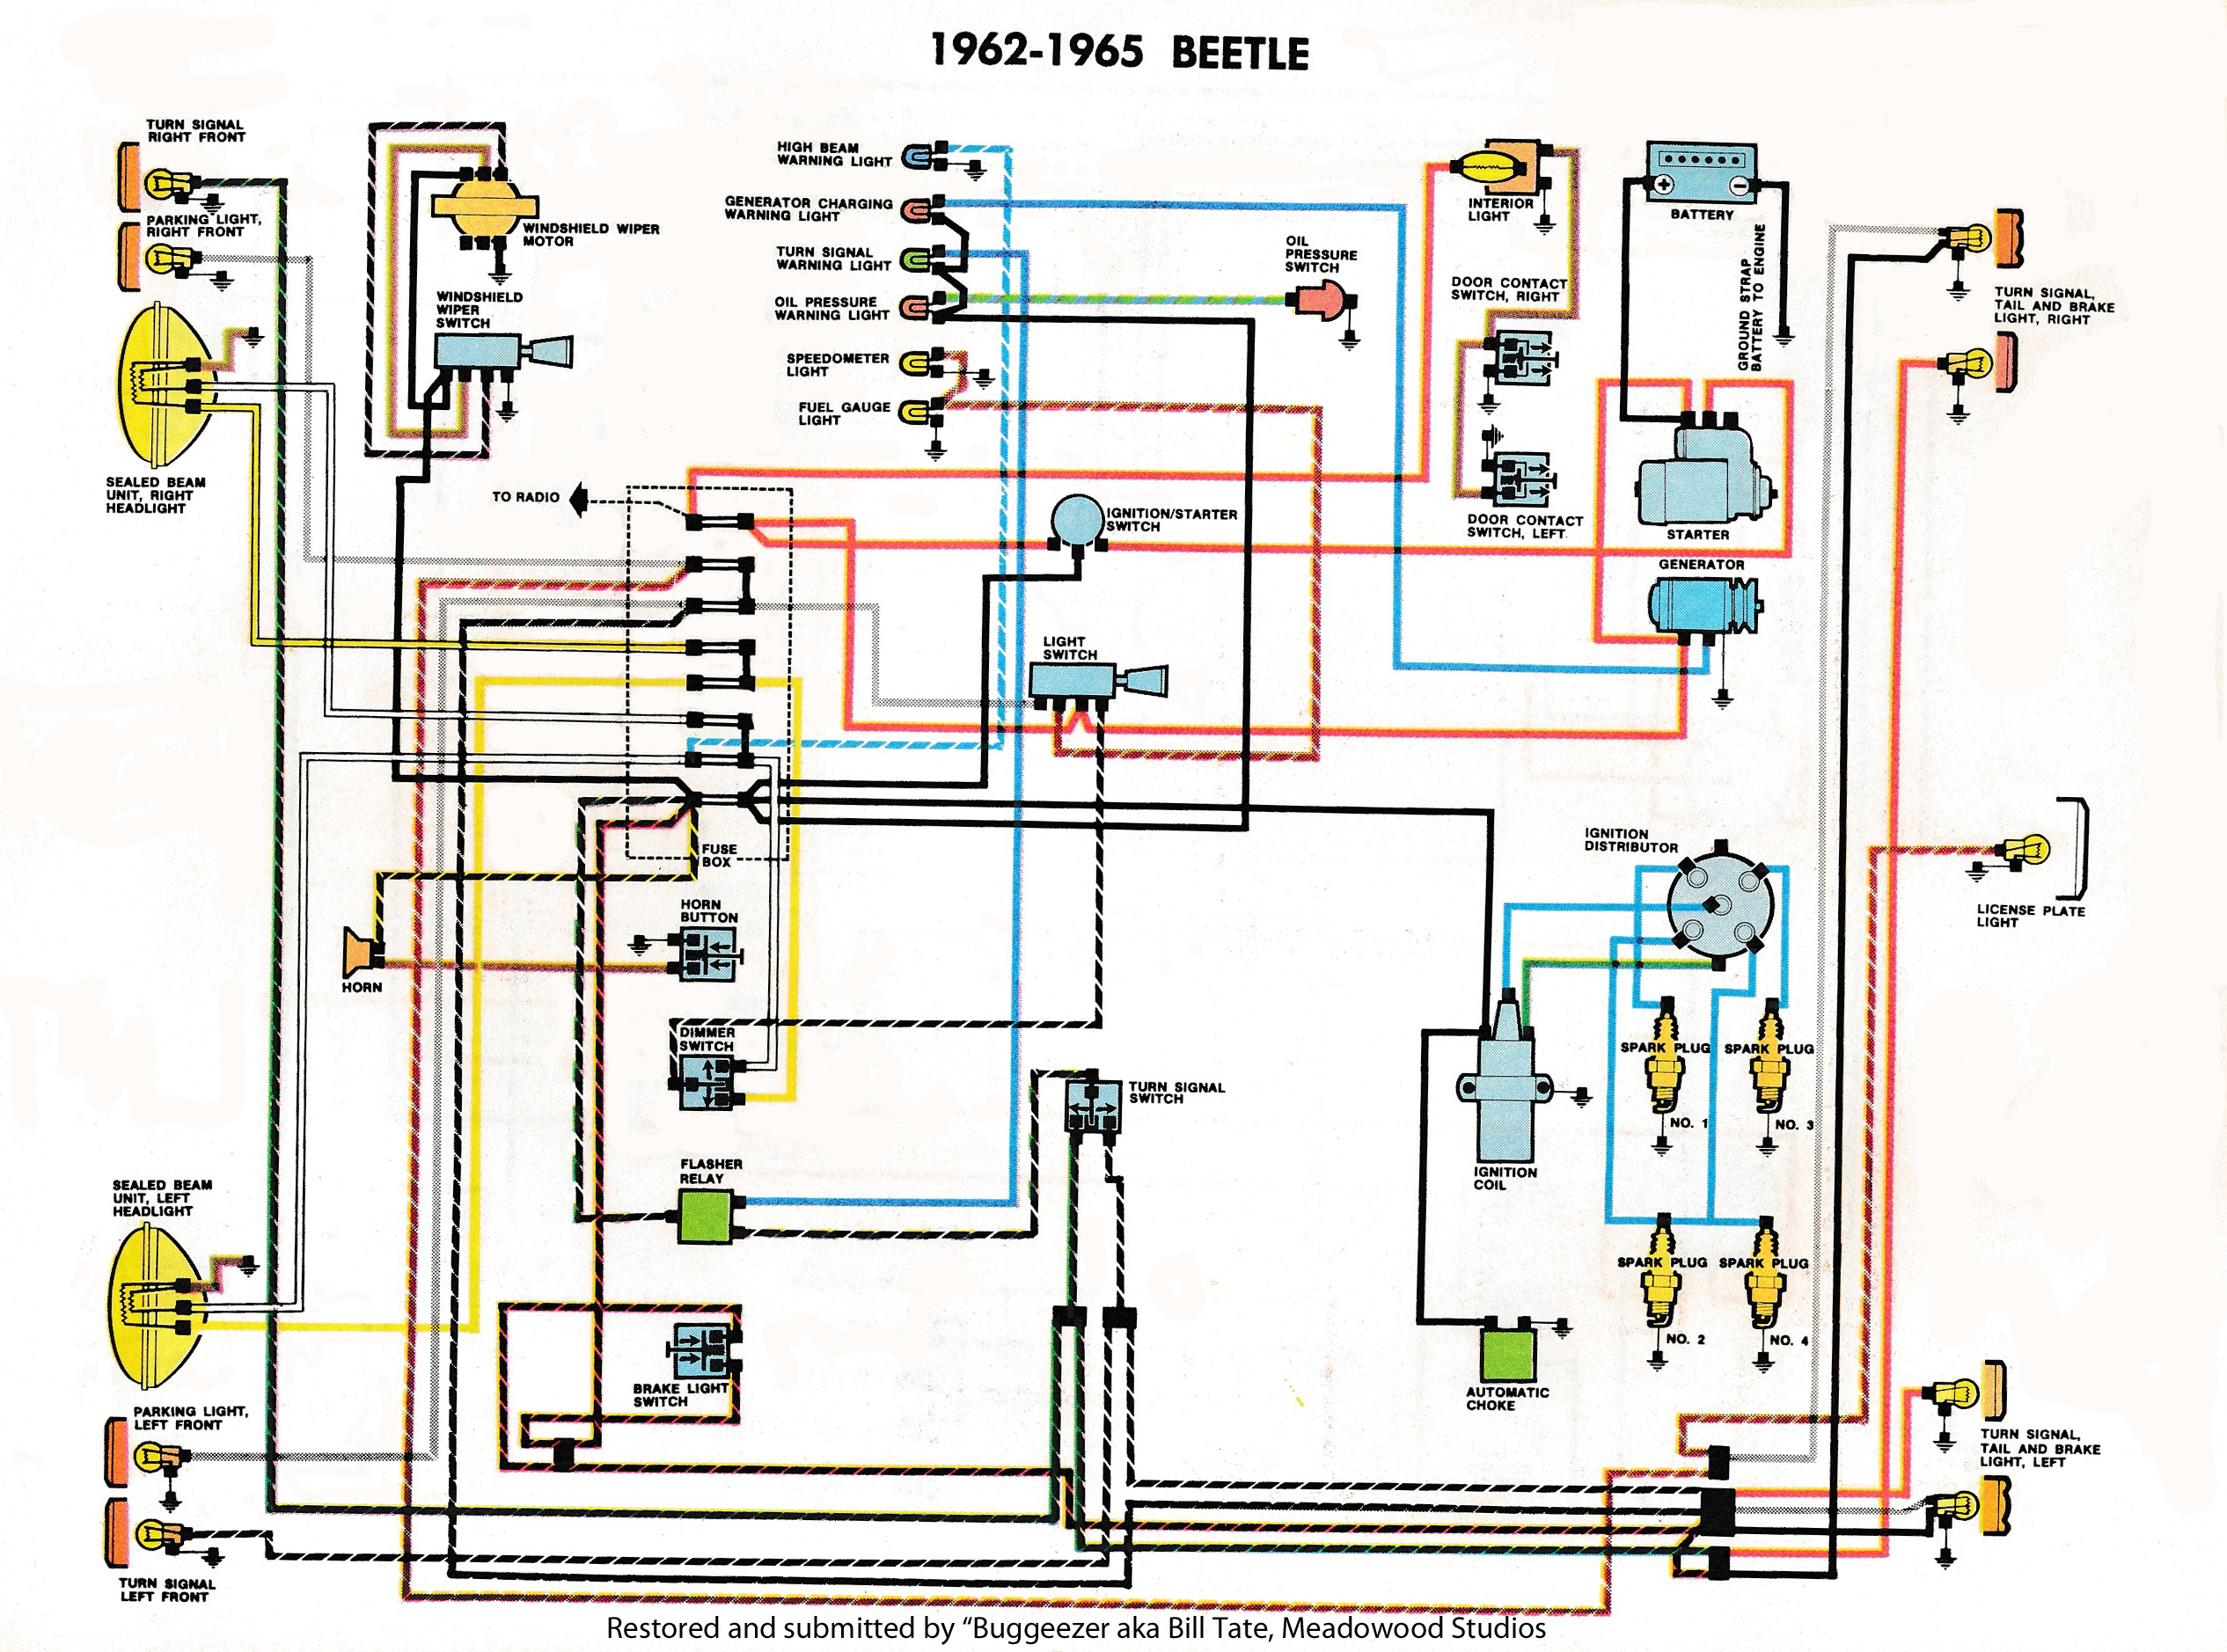 1970 vw relay diagram 9 23 kenmo lp de \u2022thesamba com type 1 wiring diagrams rh thesamba com alternator relay diagram 99 vw jetta relay